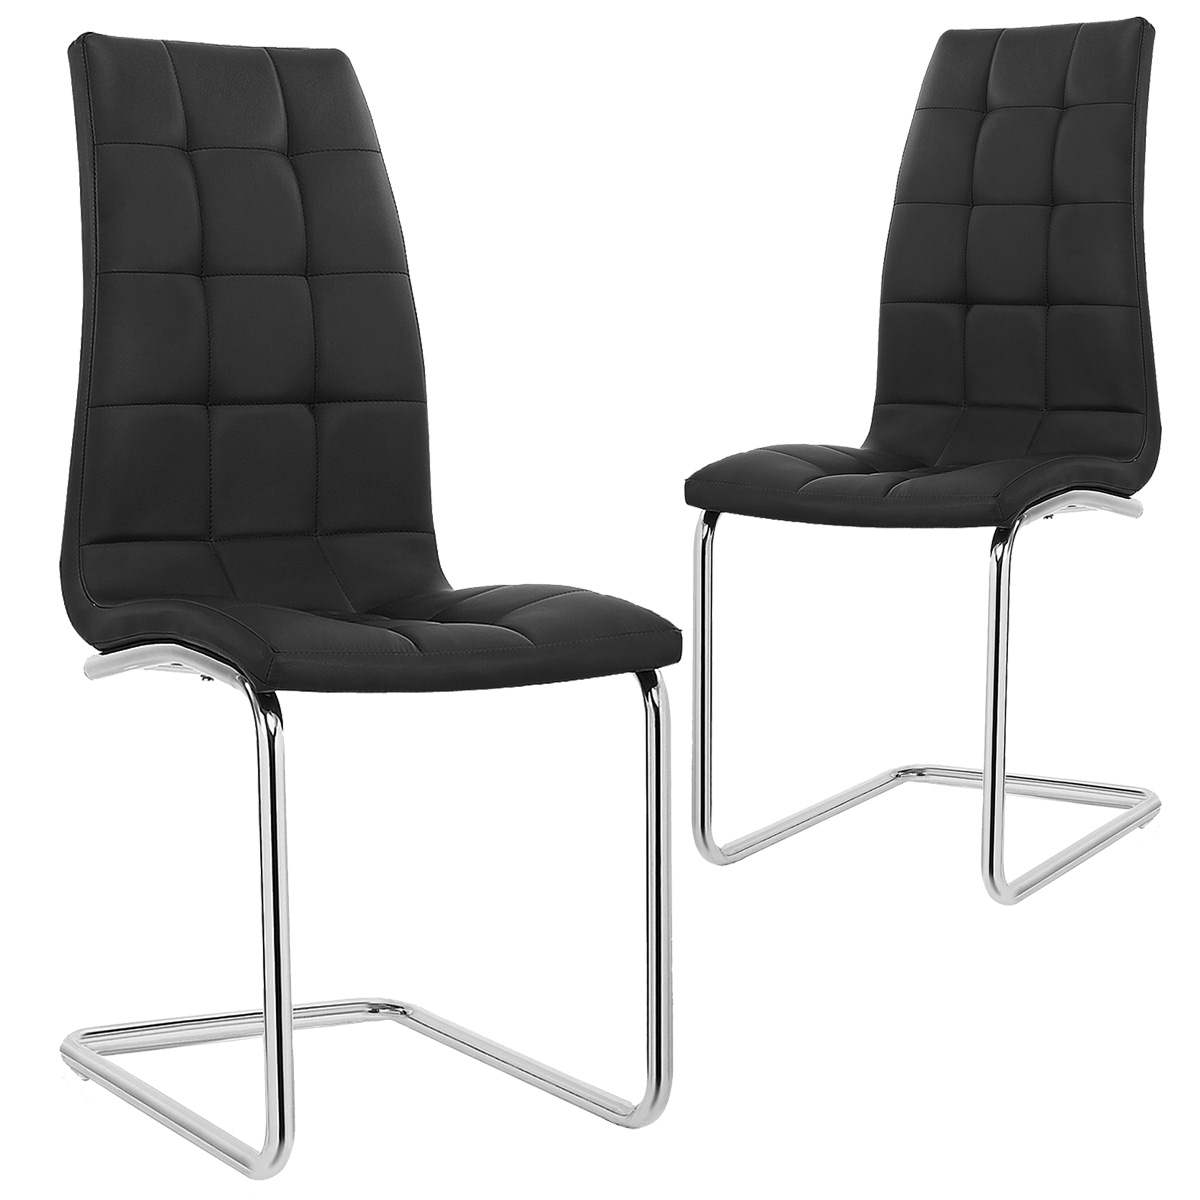 deco in paris lot de 2 chaises noir design matelasse. Black Bedroom Furniture Sets. Home Design Ideas